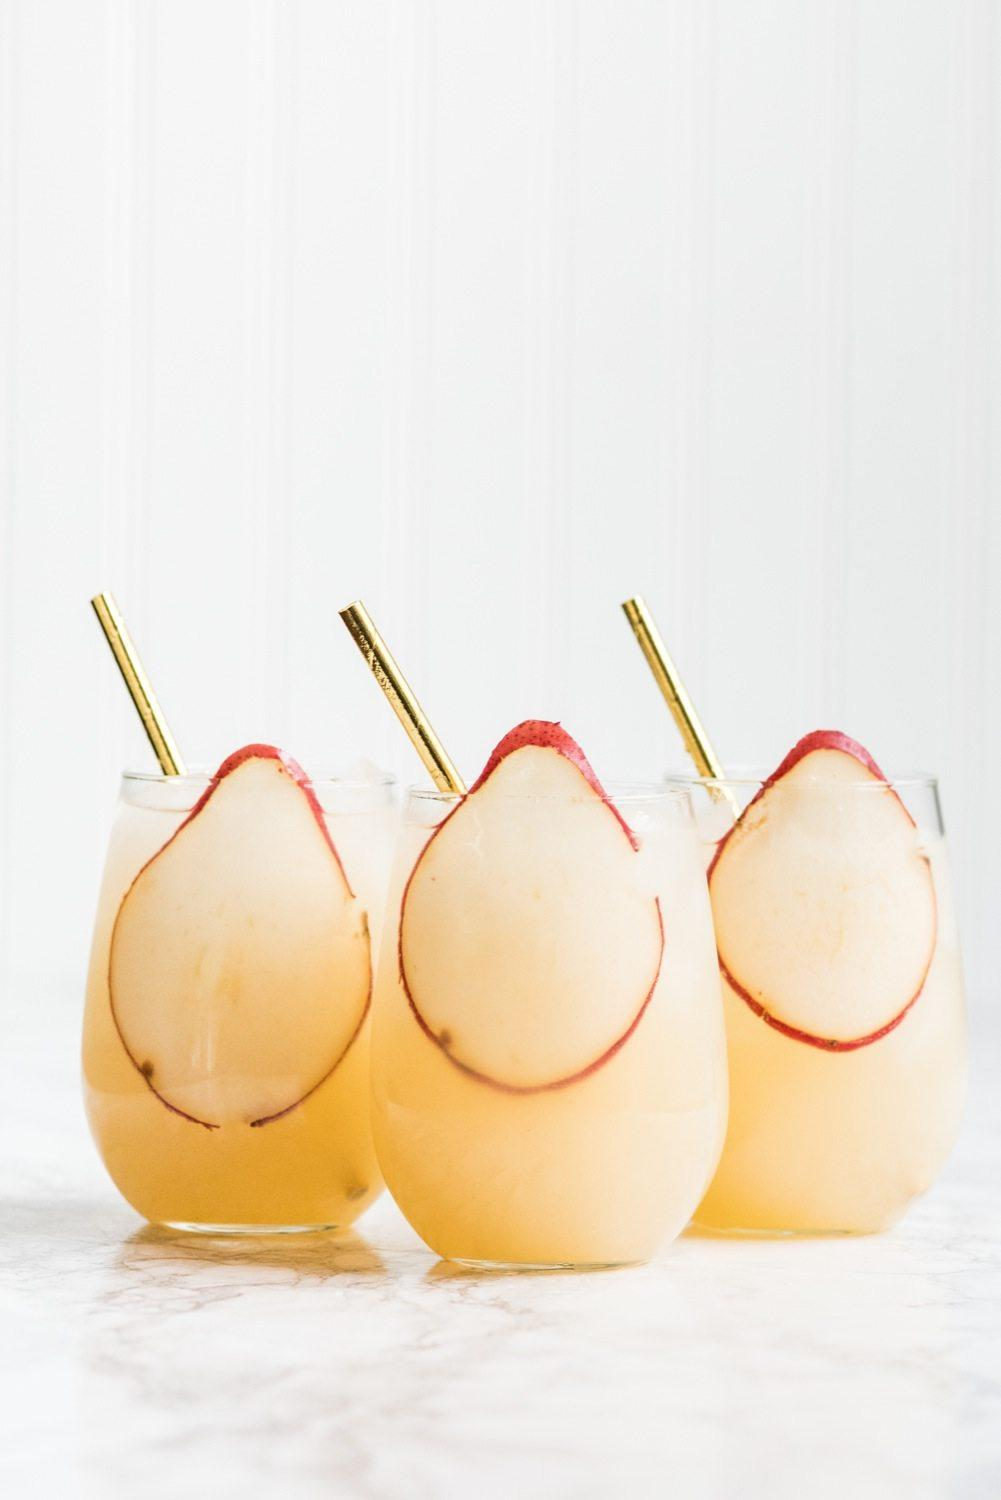 Fizzy Pear Spiked Punch, Le Grand Courtage